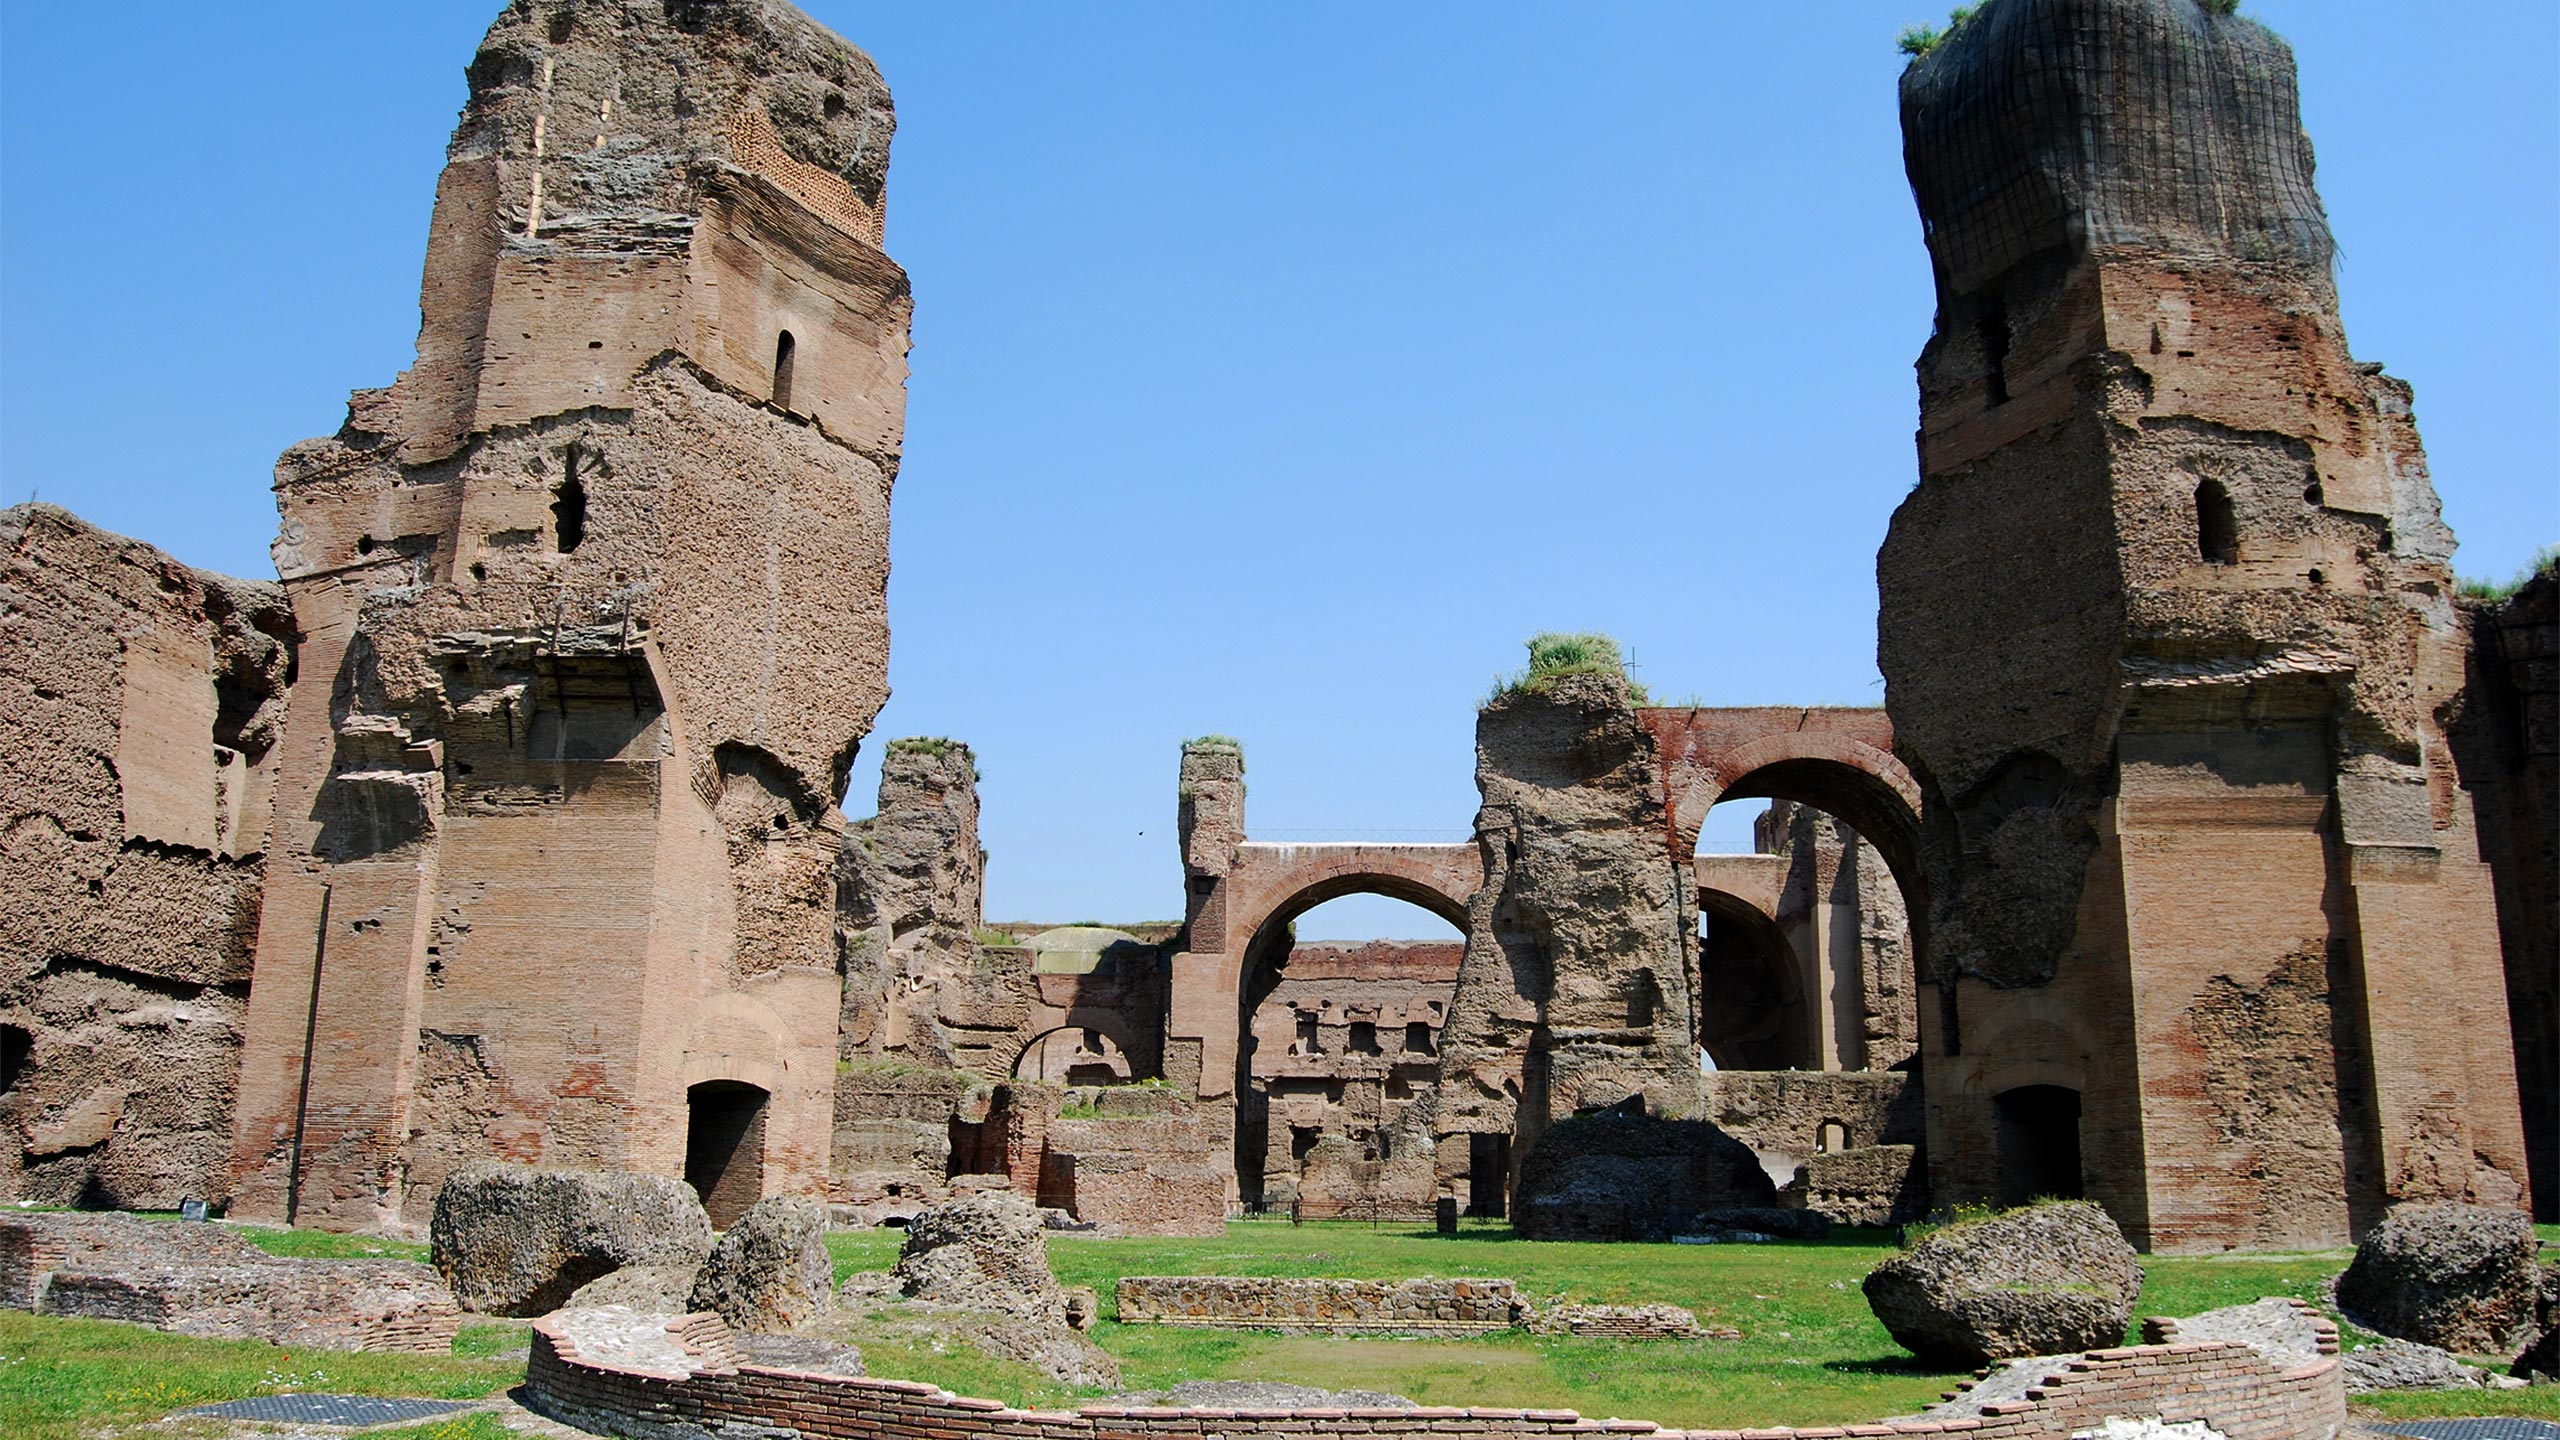 Events in Rome: a rich musical program awaits us at Terme di